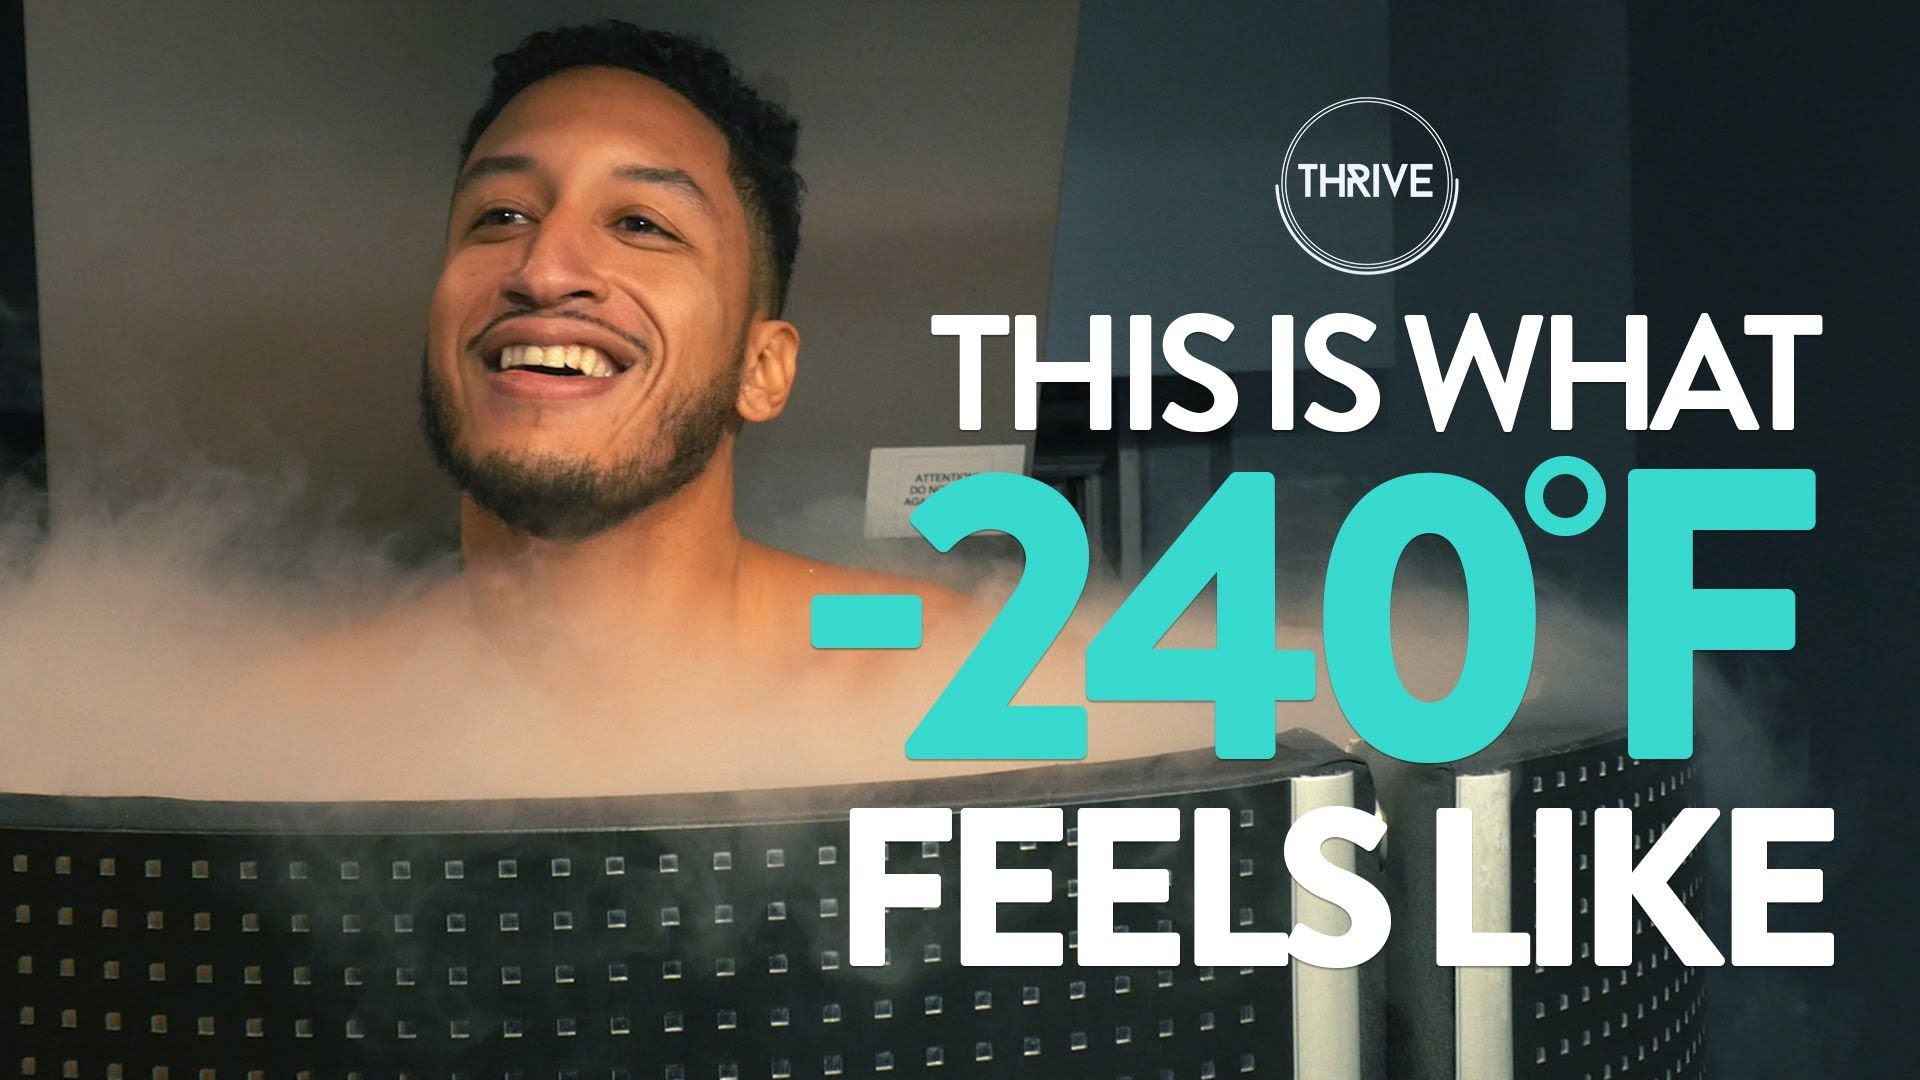 Ask Men studies the benefits of cryotherapy. cryotherapy